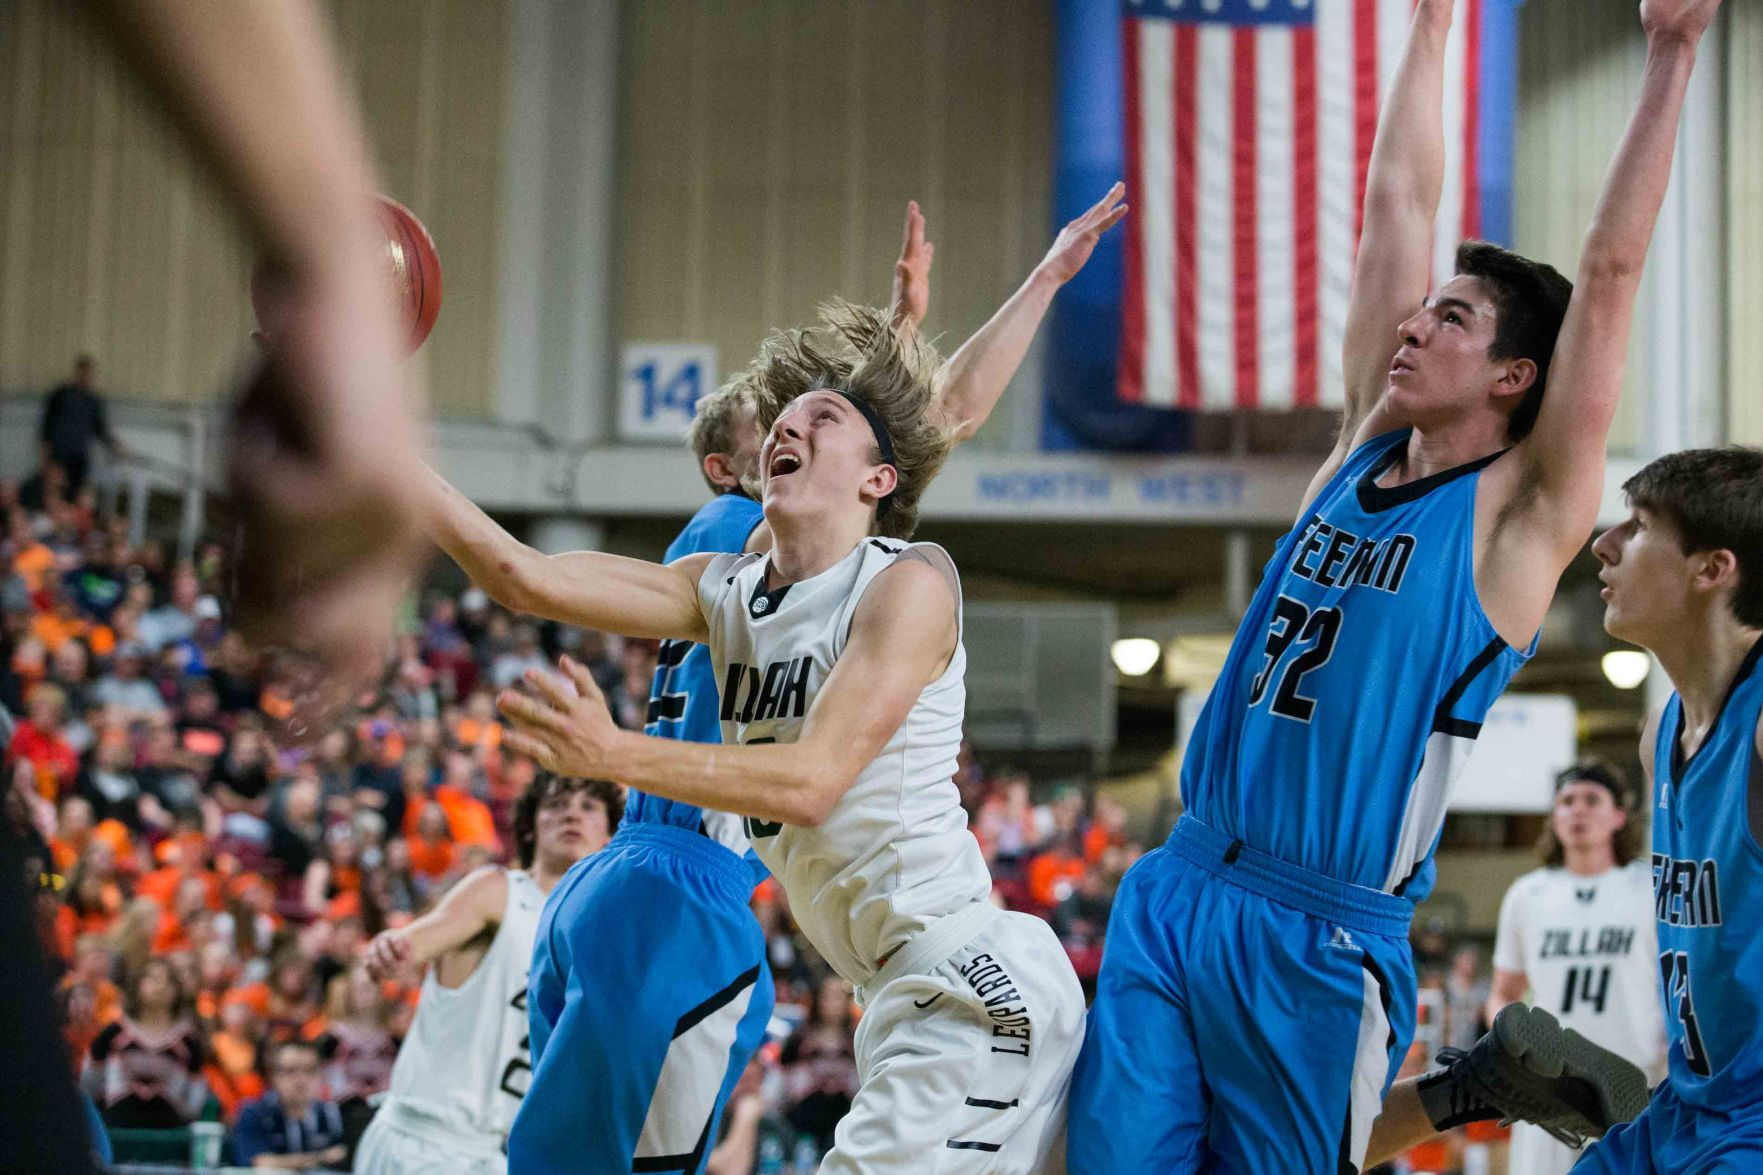 Whitaker leads Zillah boys to 1A state